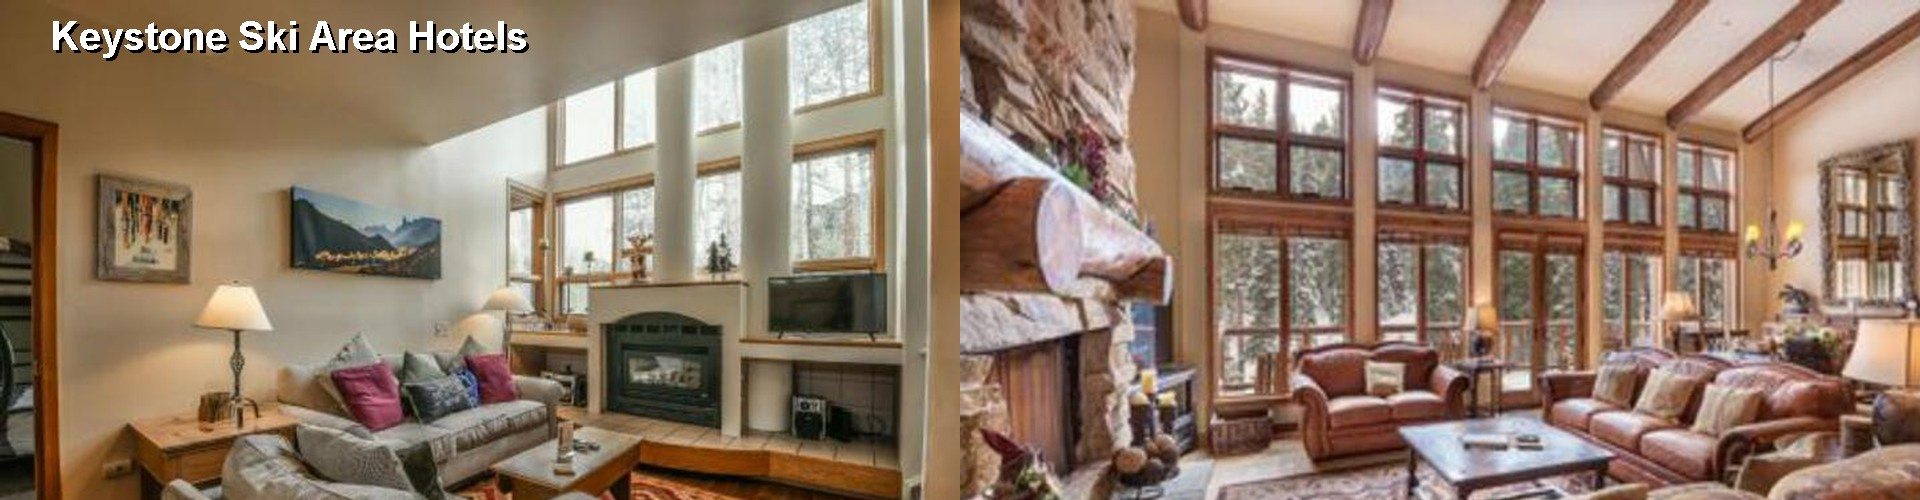 5 Best Hotels Near Keystone Ski Area